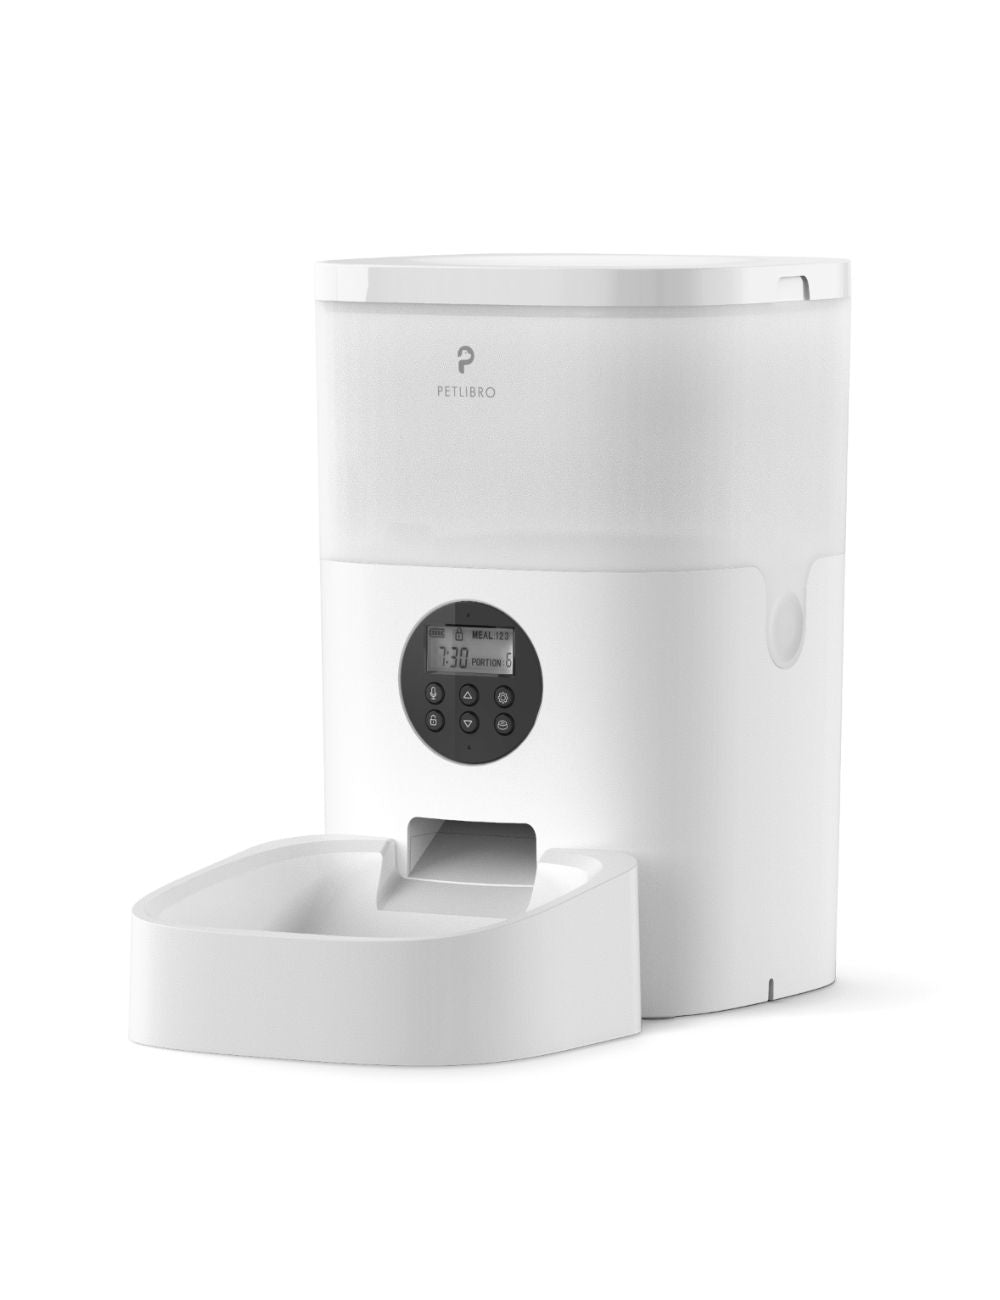 Automatic Pet Feeder - Petlibro